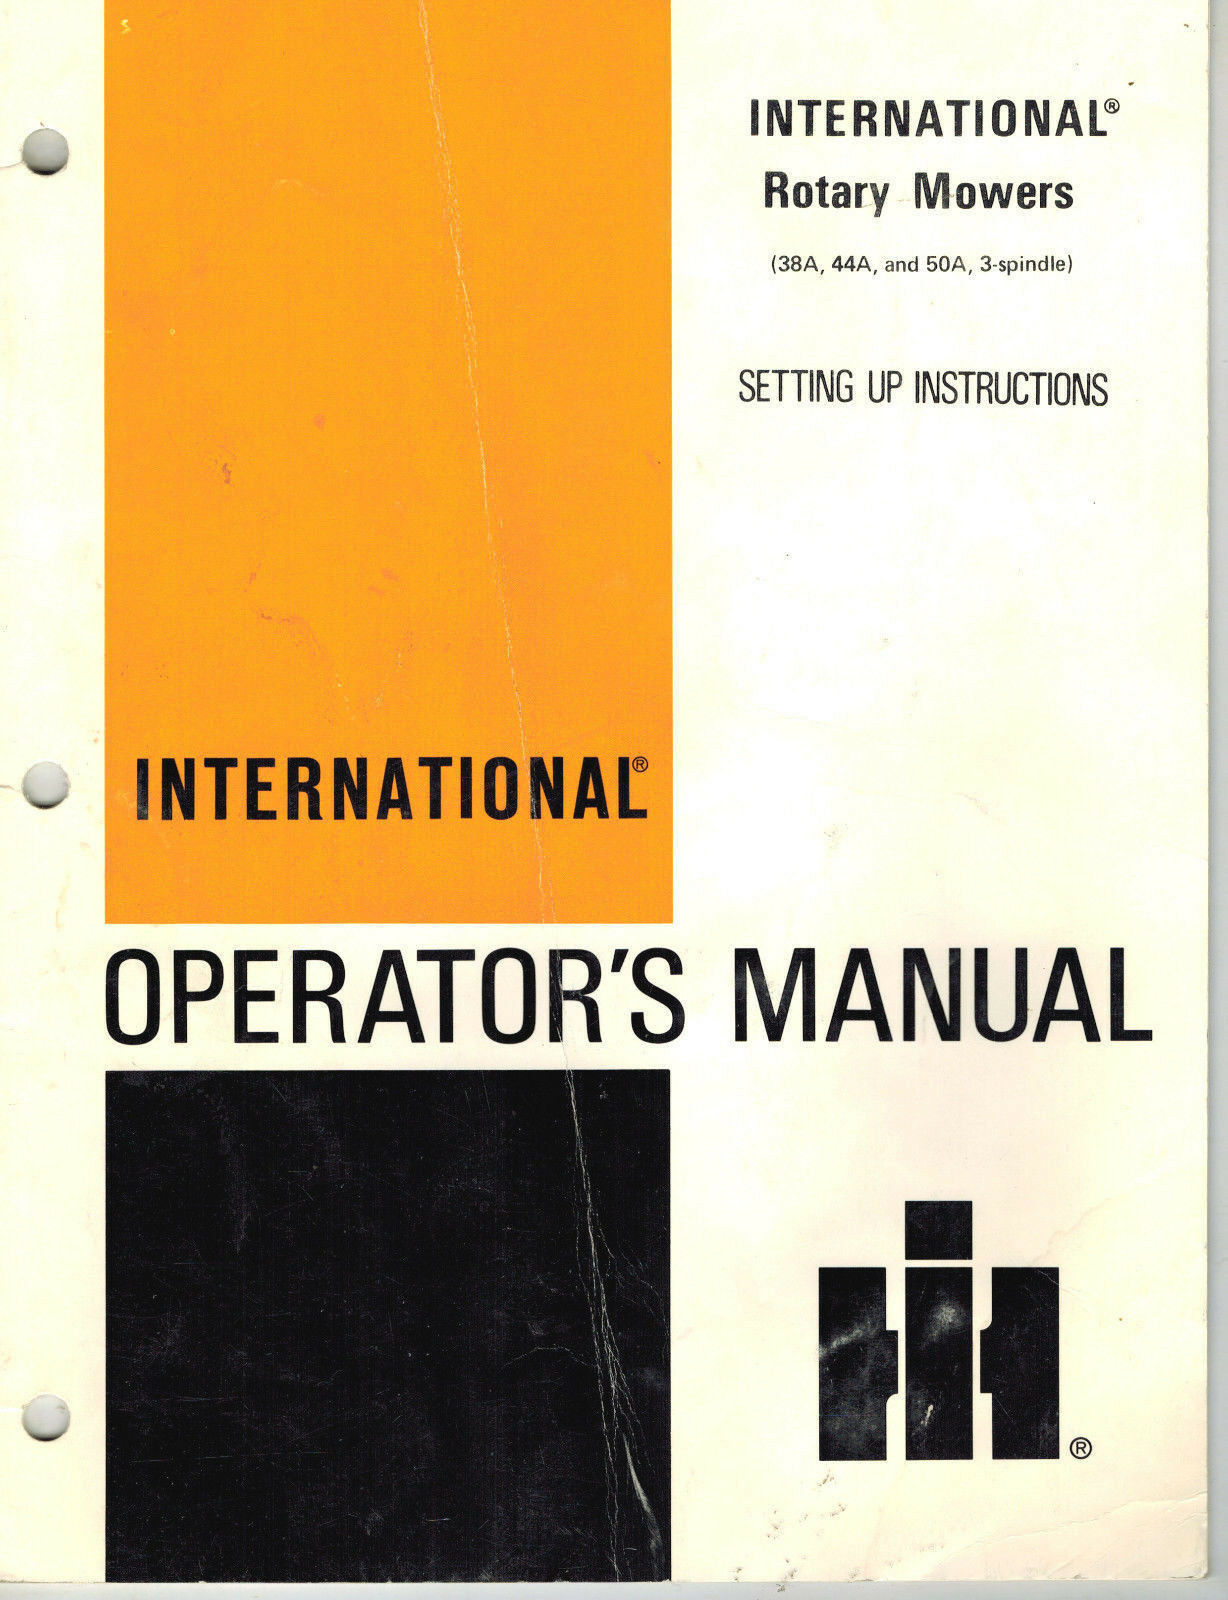 International Cub Cadet 38A 44A 48A Rotary Mower Operator's Manual 1 of  4Only 1 available See More